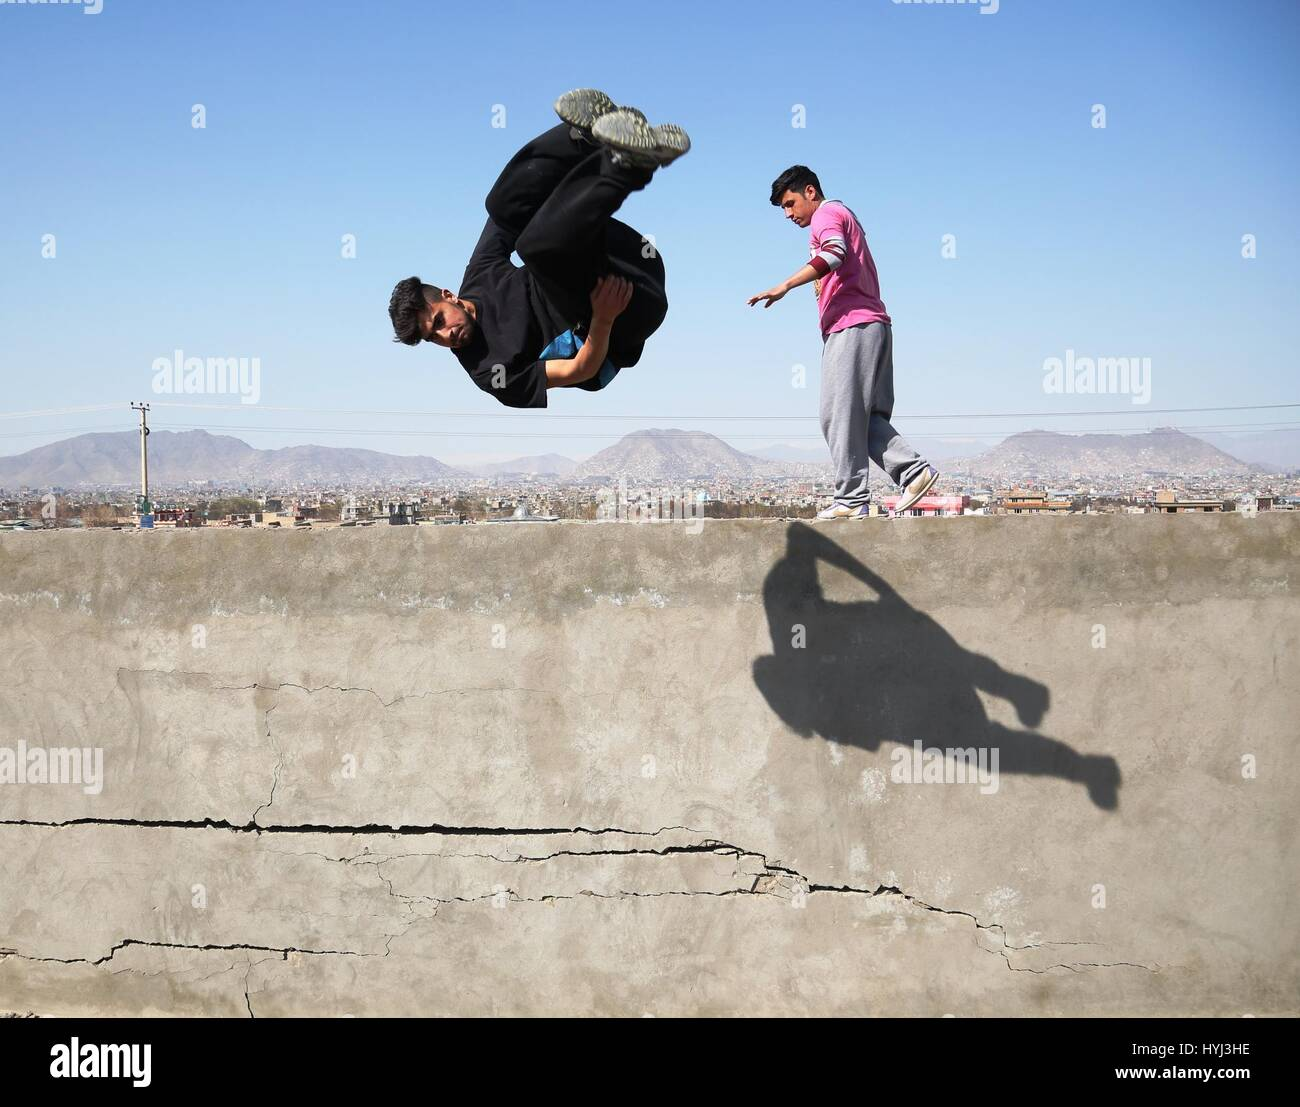 Kabul, Afghanistan. 4th April, 2017. An Afghan youth performs his Parkour skills from top of a wall in Kabul, capital - Stock Image